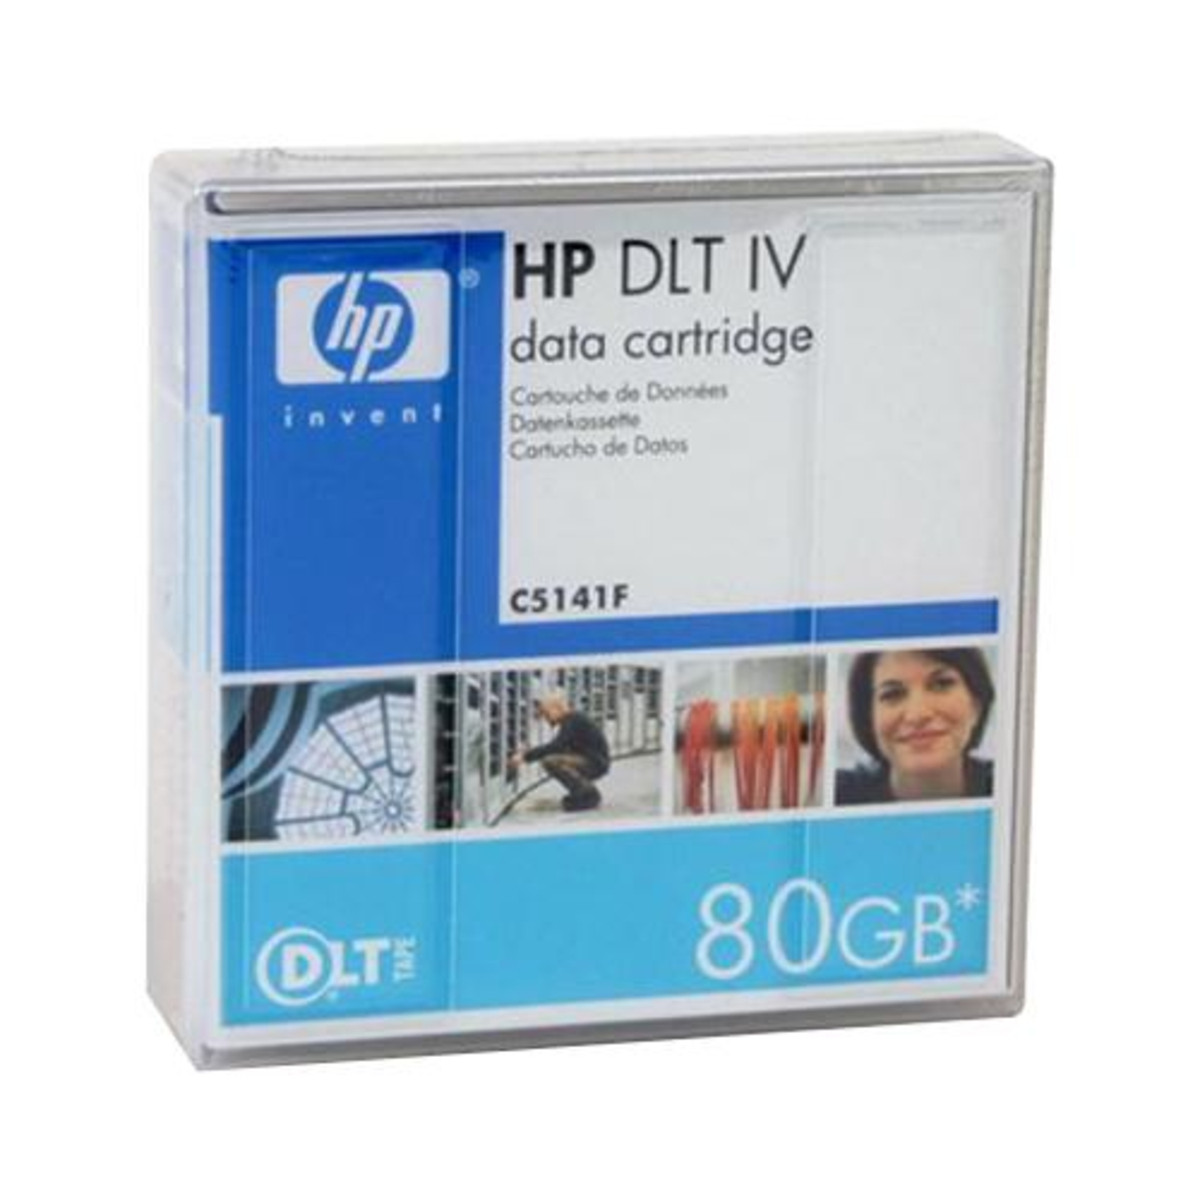 HP CLTtape IV 40/70/80GB Data Cartridge (C5141F)